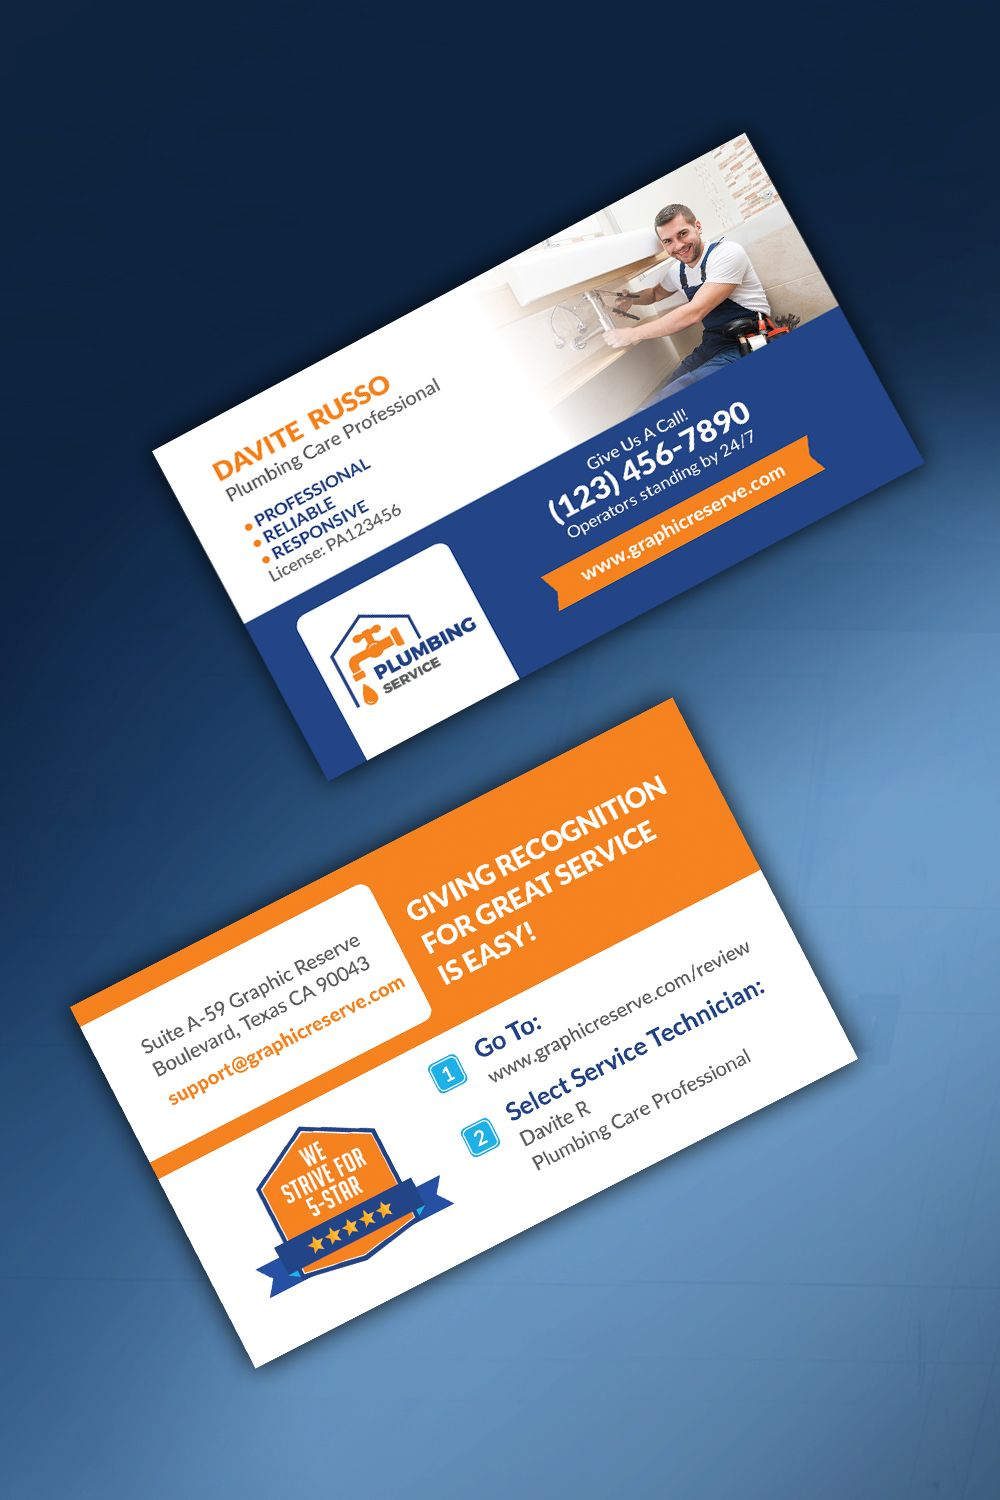 Review Me Plumber Business Card Business Card Graphic Business Card Template Design Plumber